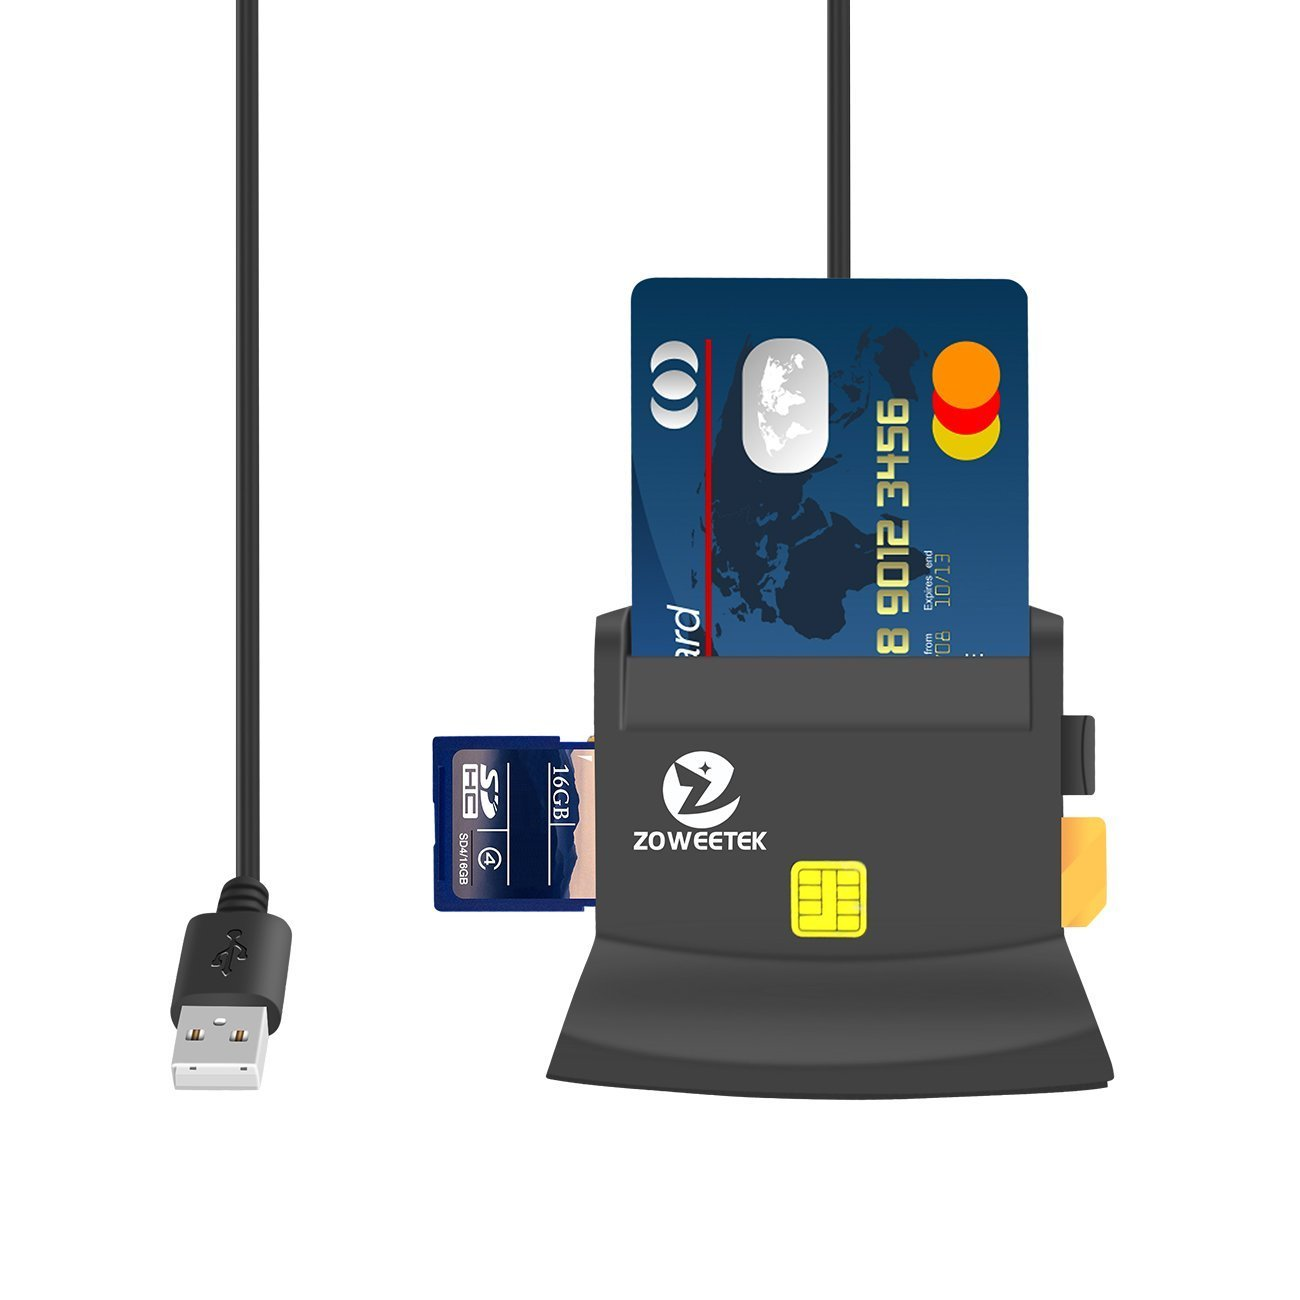 Zoweetek Smart Card Reader for National ID card, SD Card Reader for SDXC, SDHC, SD, MMC, RS-MMC, Micro SDXC, Micro SD, Micro SDHC Card, Compatible with Mac OS and Windows